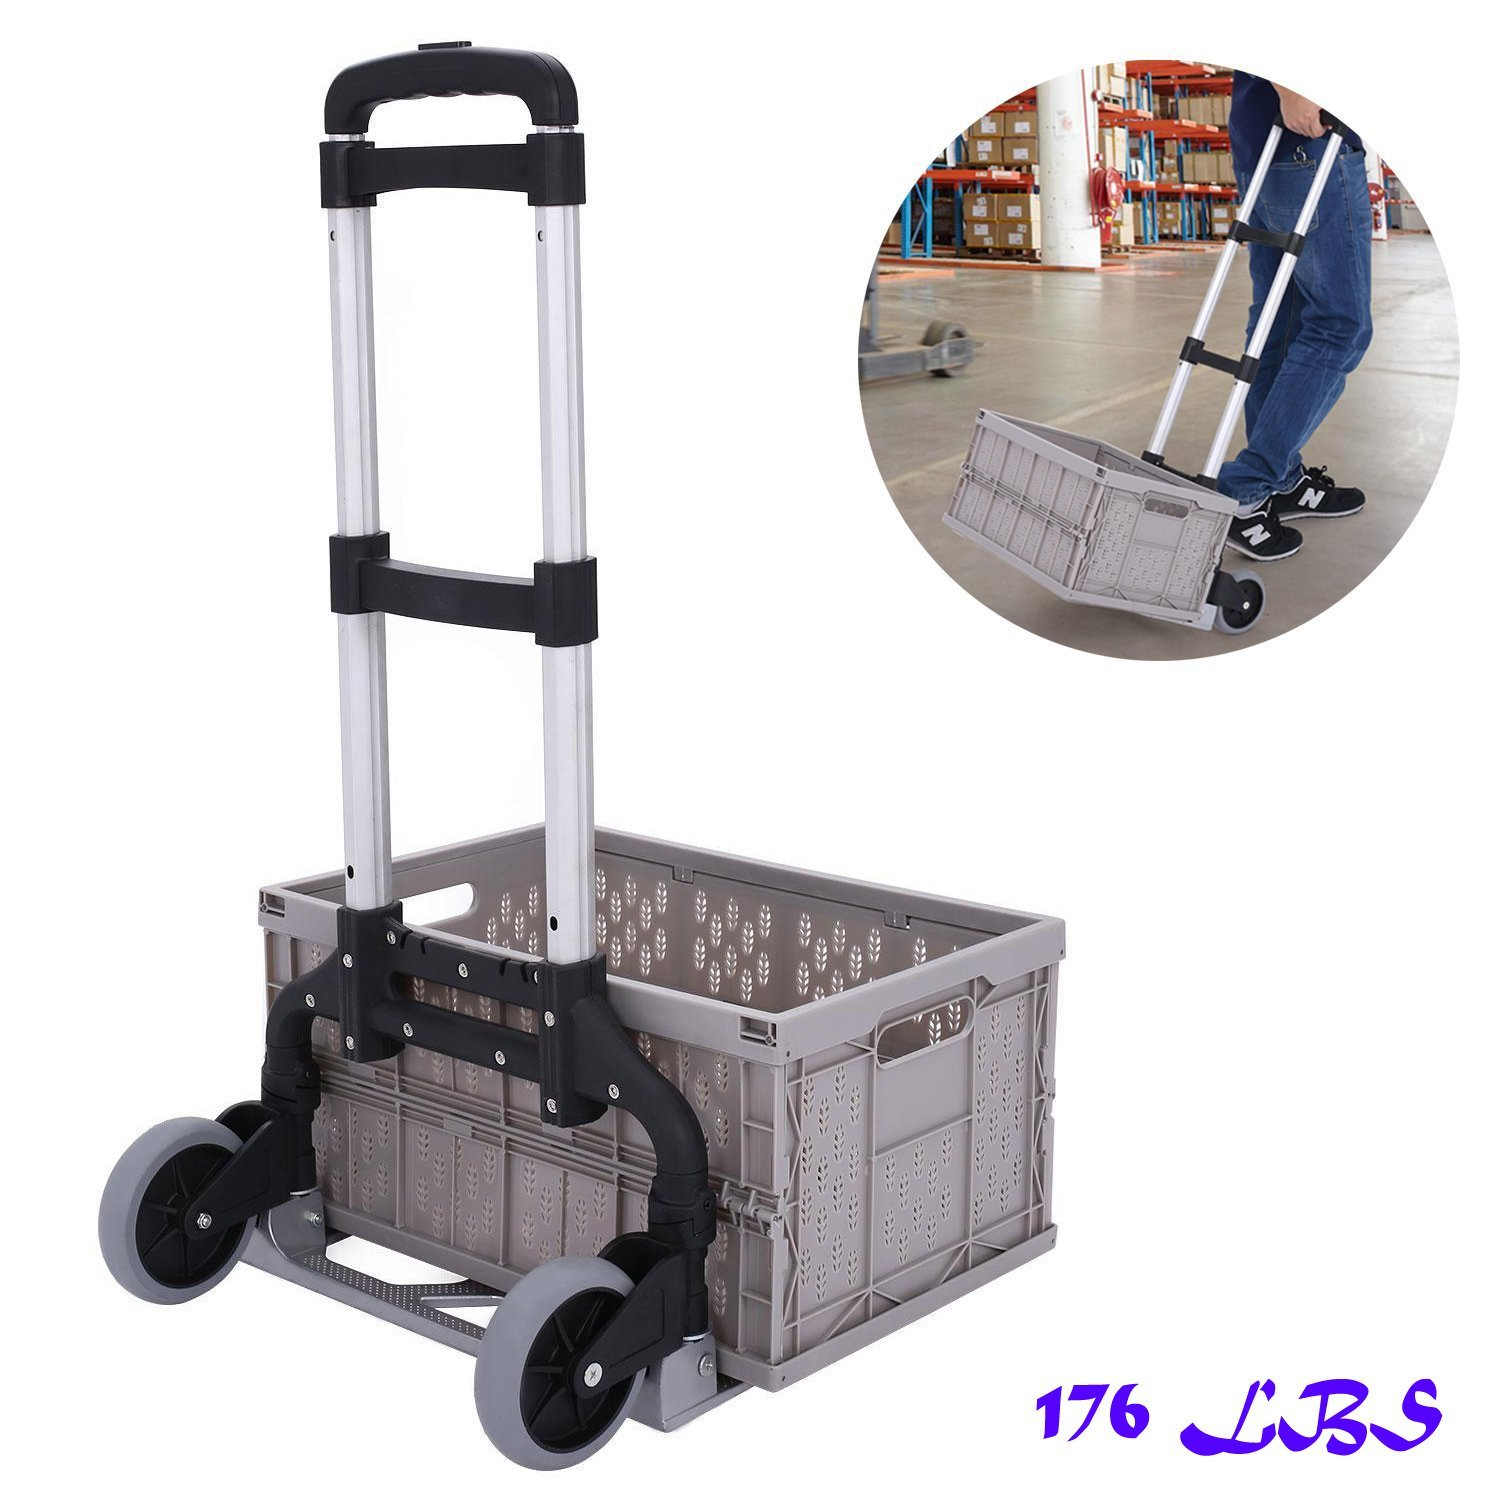 2acf9a59d928 Cheap Collapsible Dolly, find Collapsible Dolly deals on line at ...